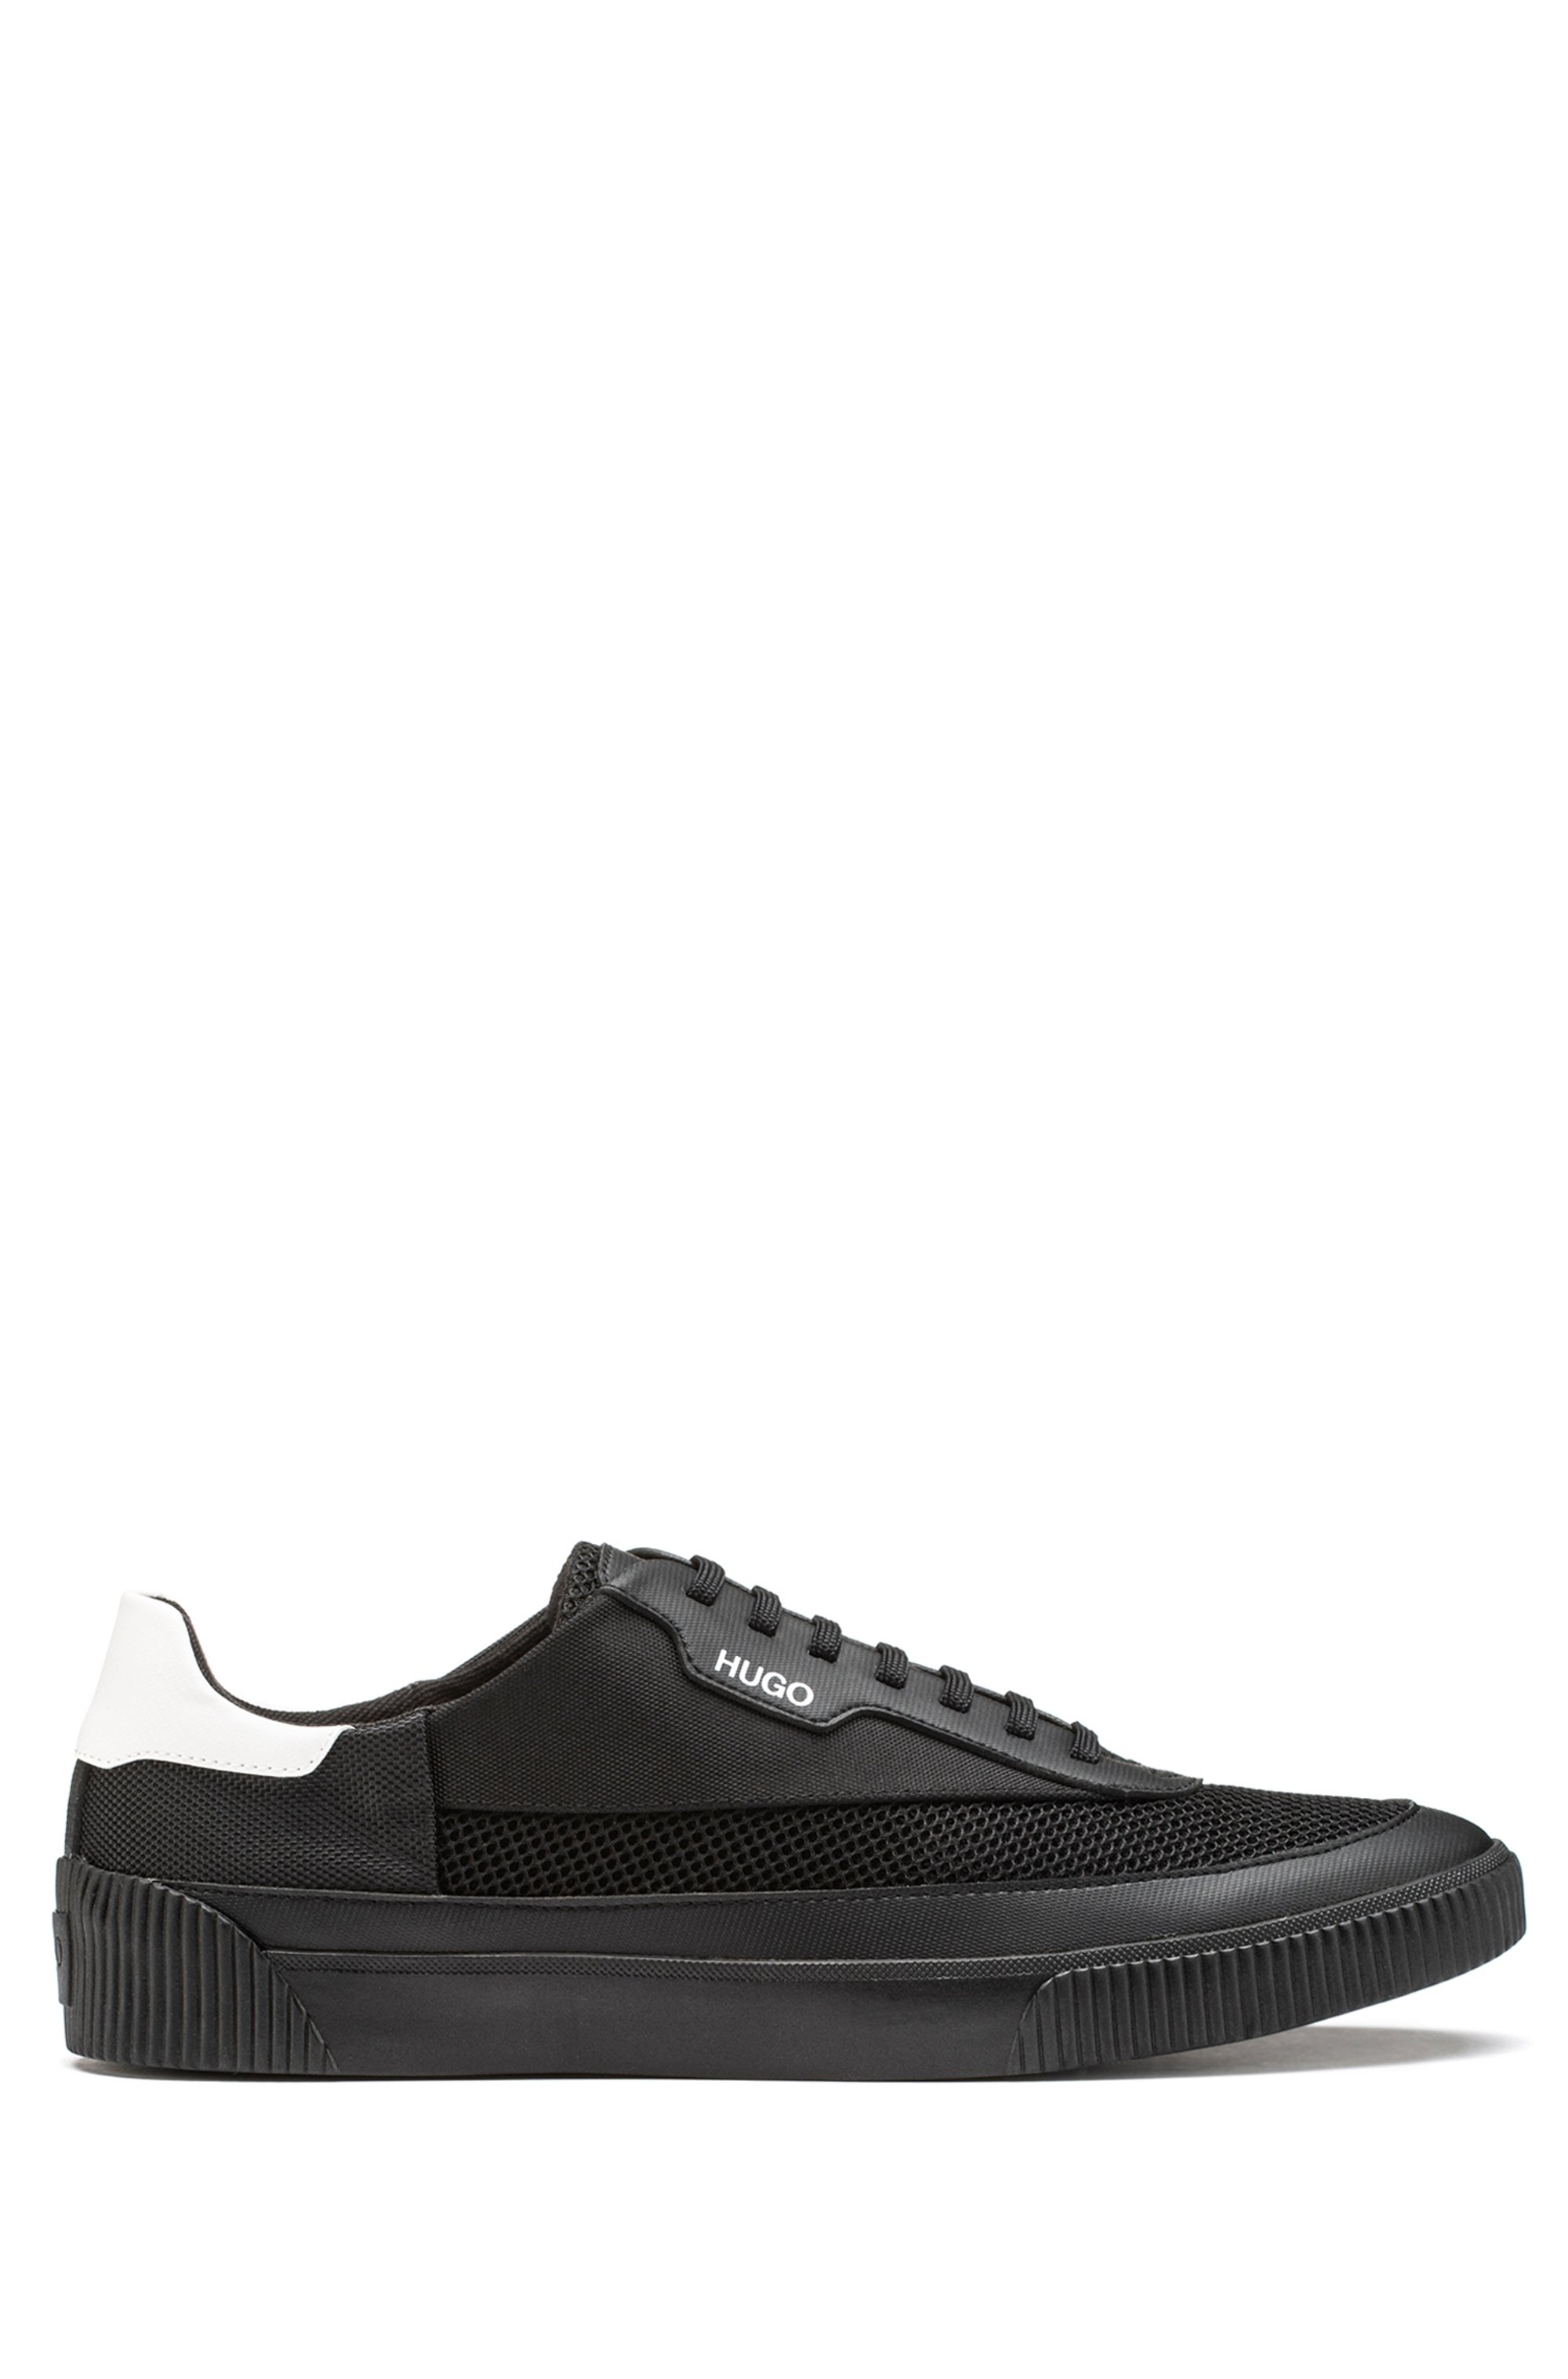 Tennis-style trainers in mixed materials with contrast heel, Black